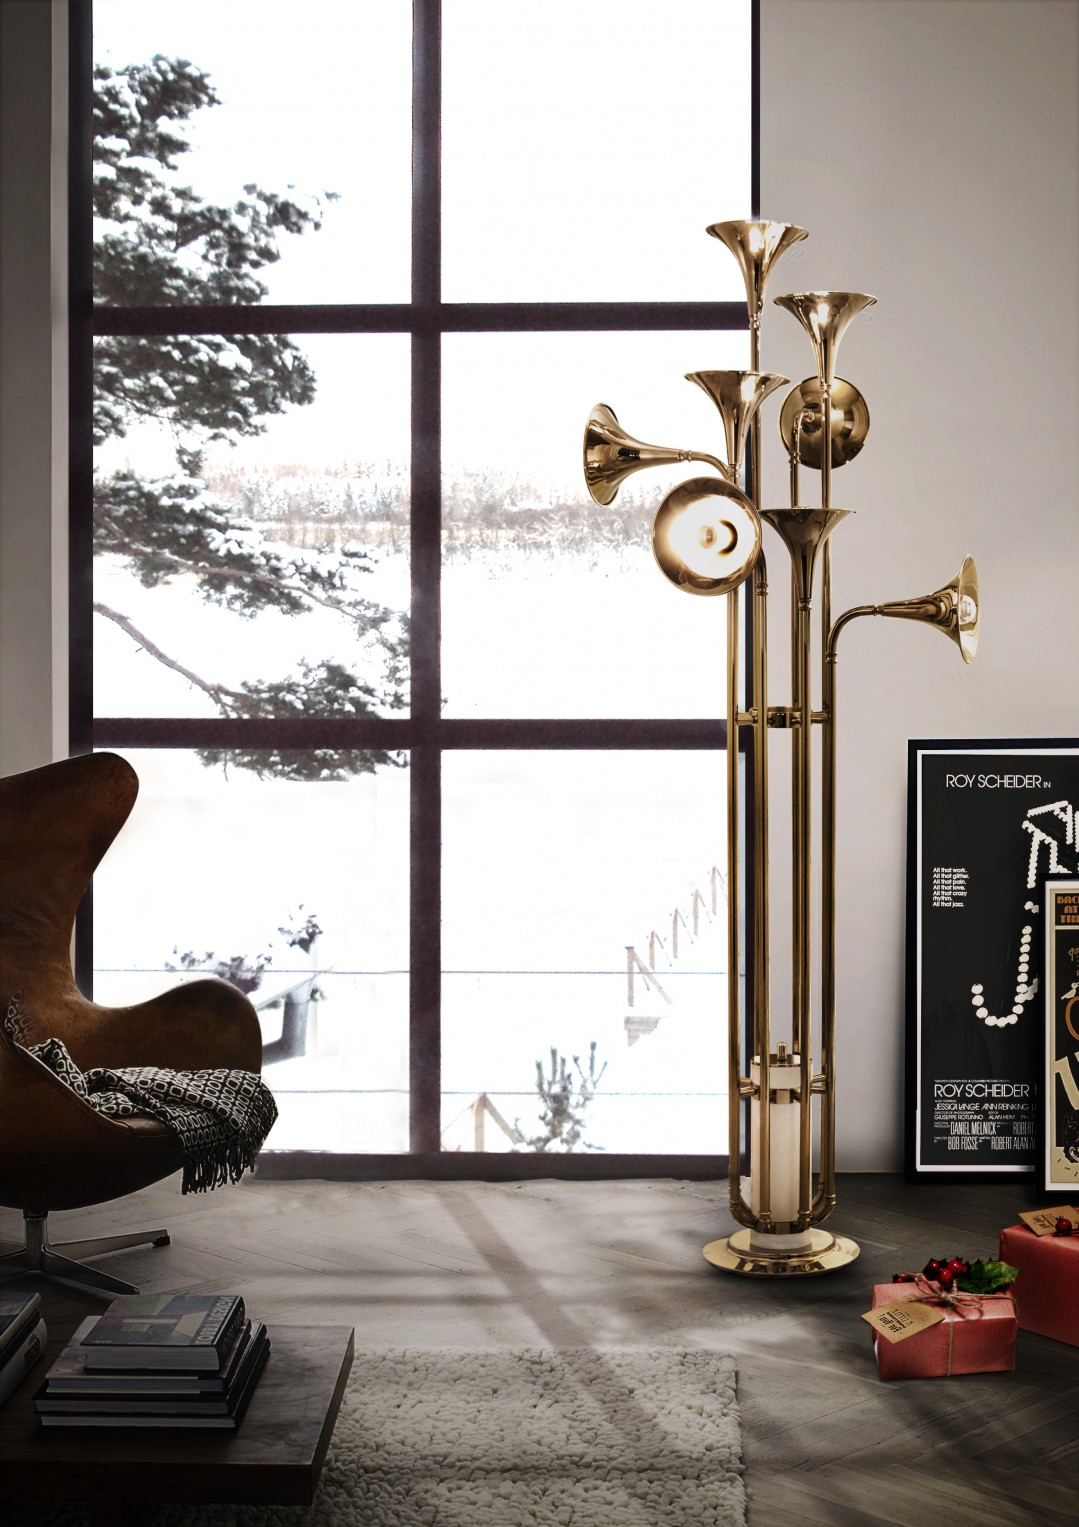 gold-plated floor lamps What's Hot On Pinterest Gold-Plated Floor Lamps! botti floor ambience 04 HR christmas14c0a390be885948cd5e6d33ba76a618